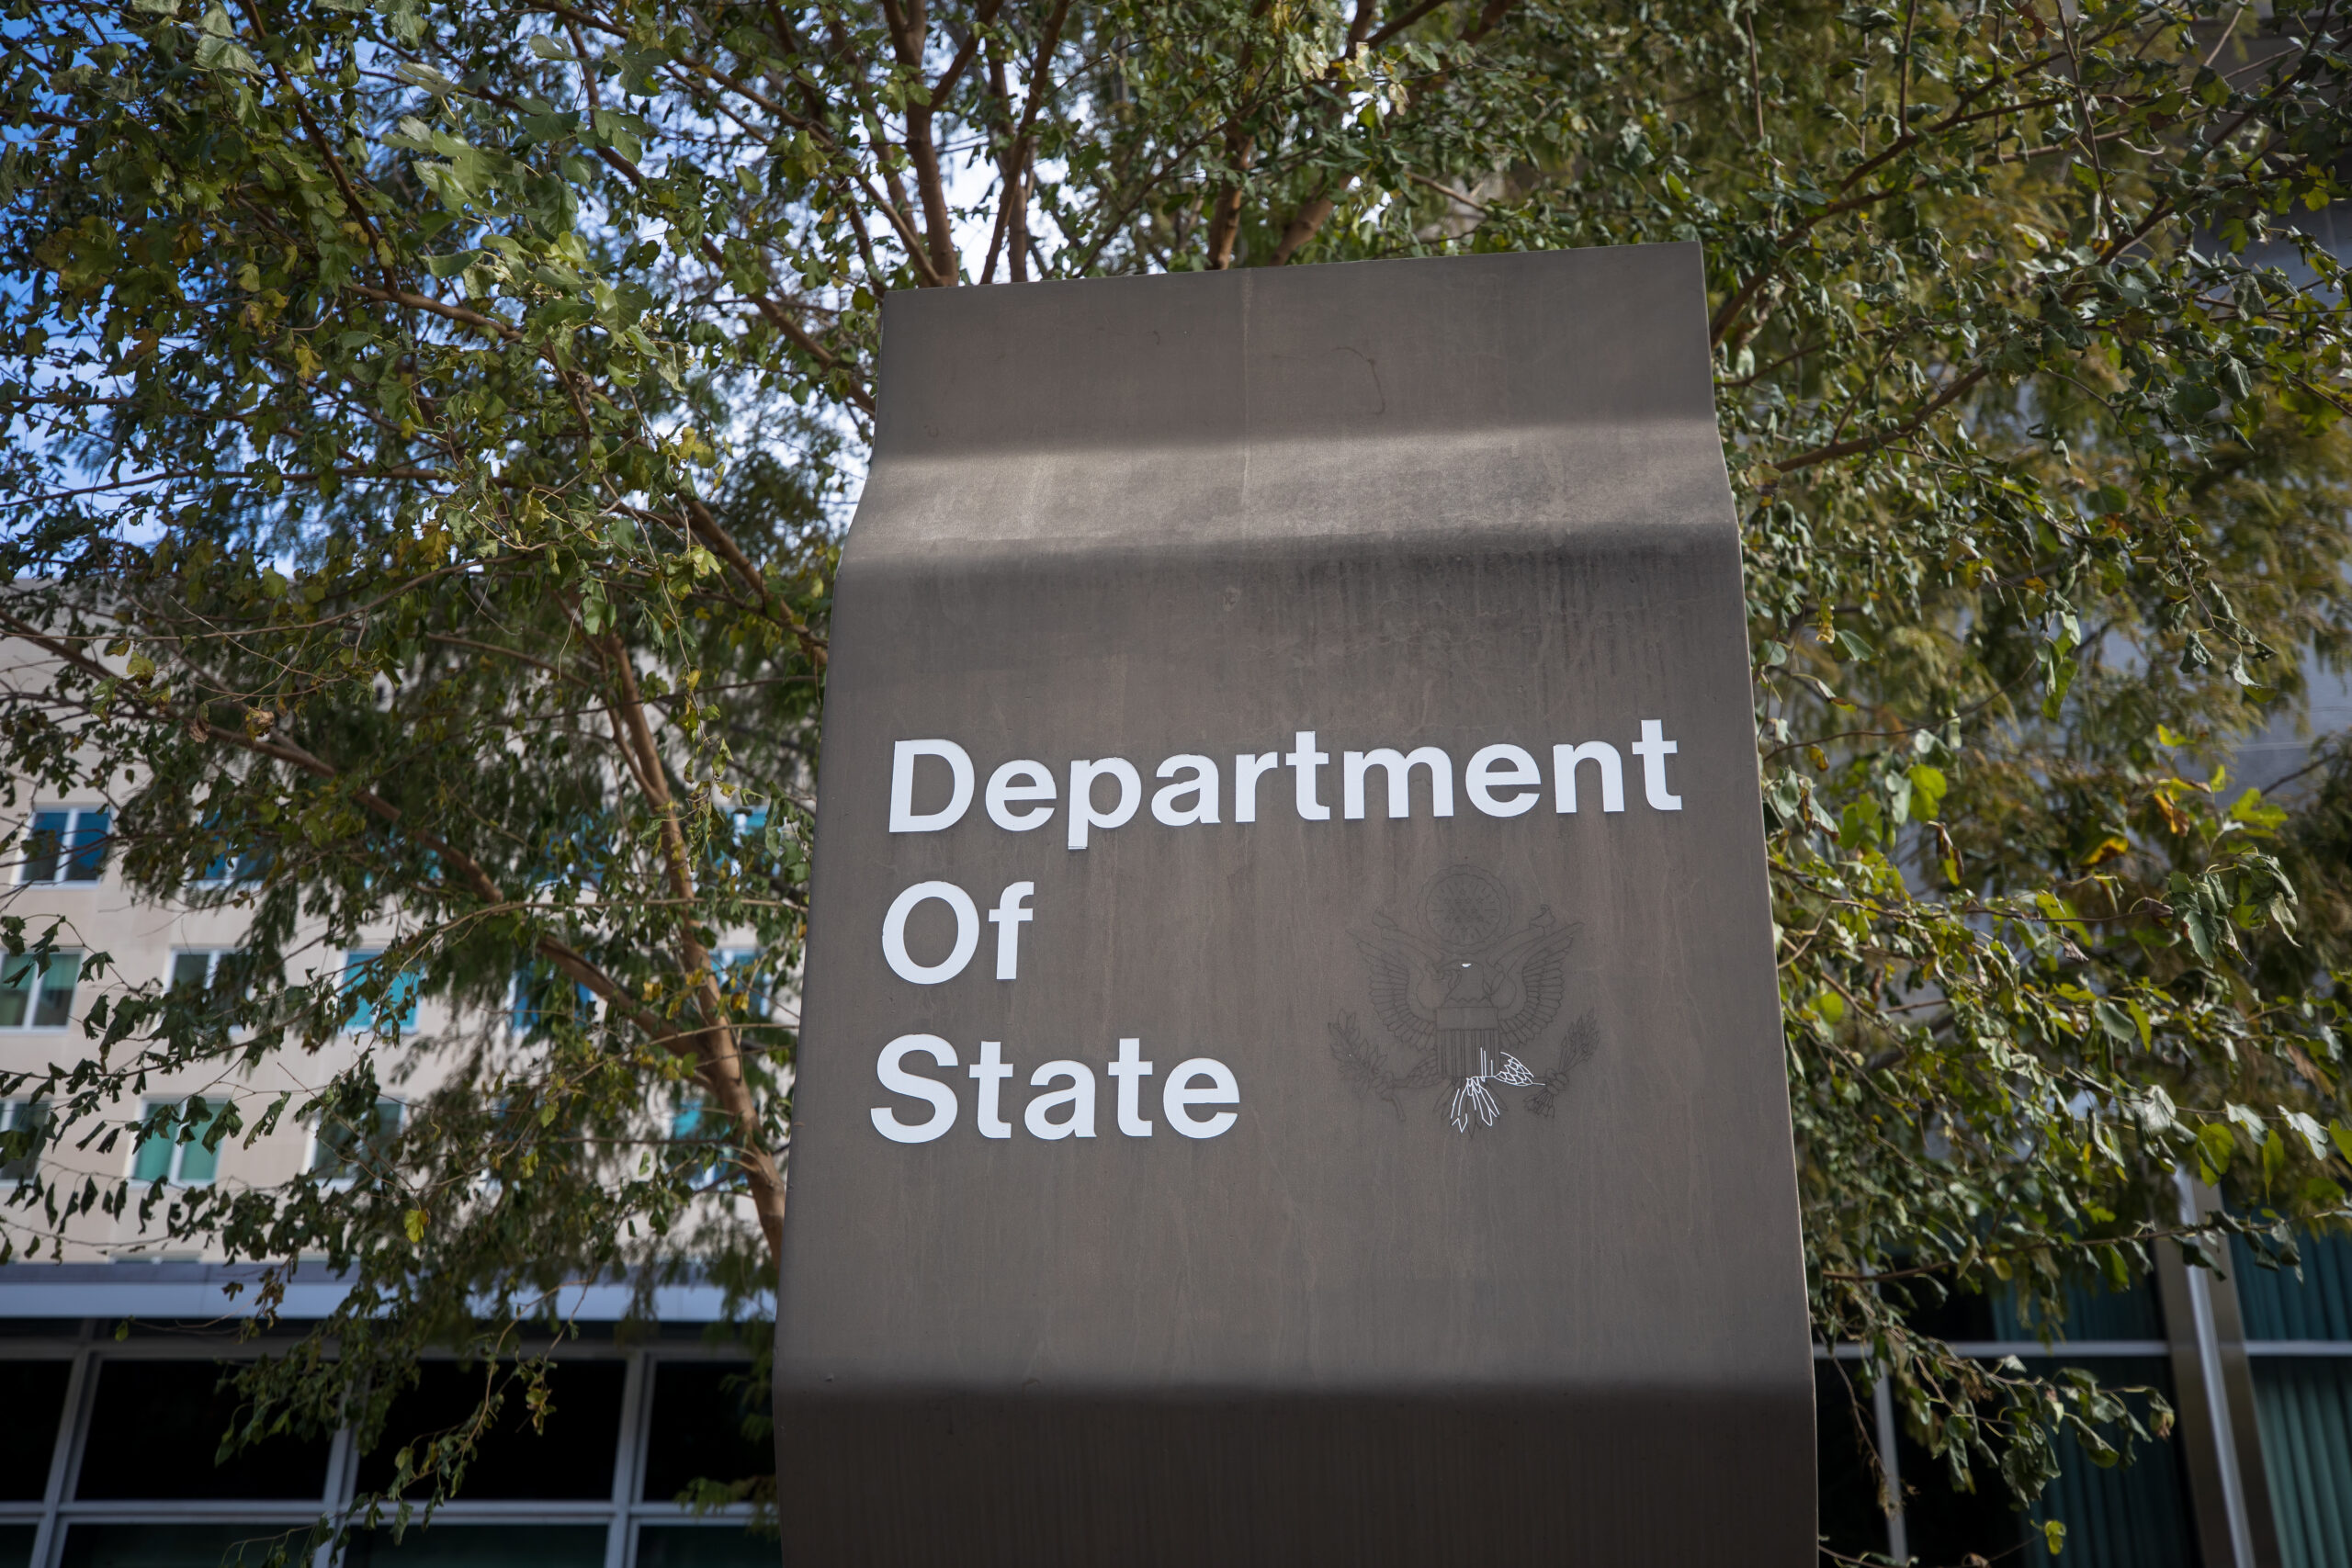 The Department of State building